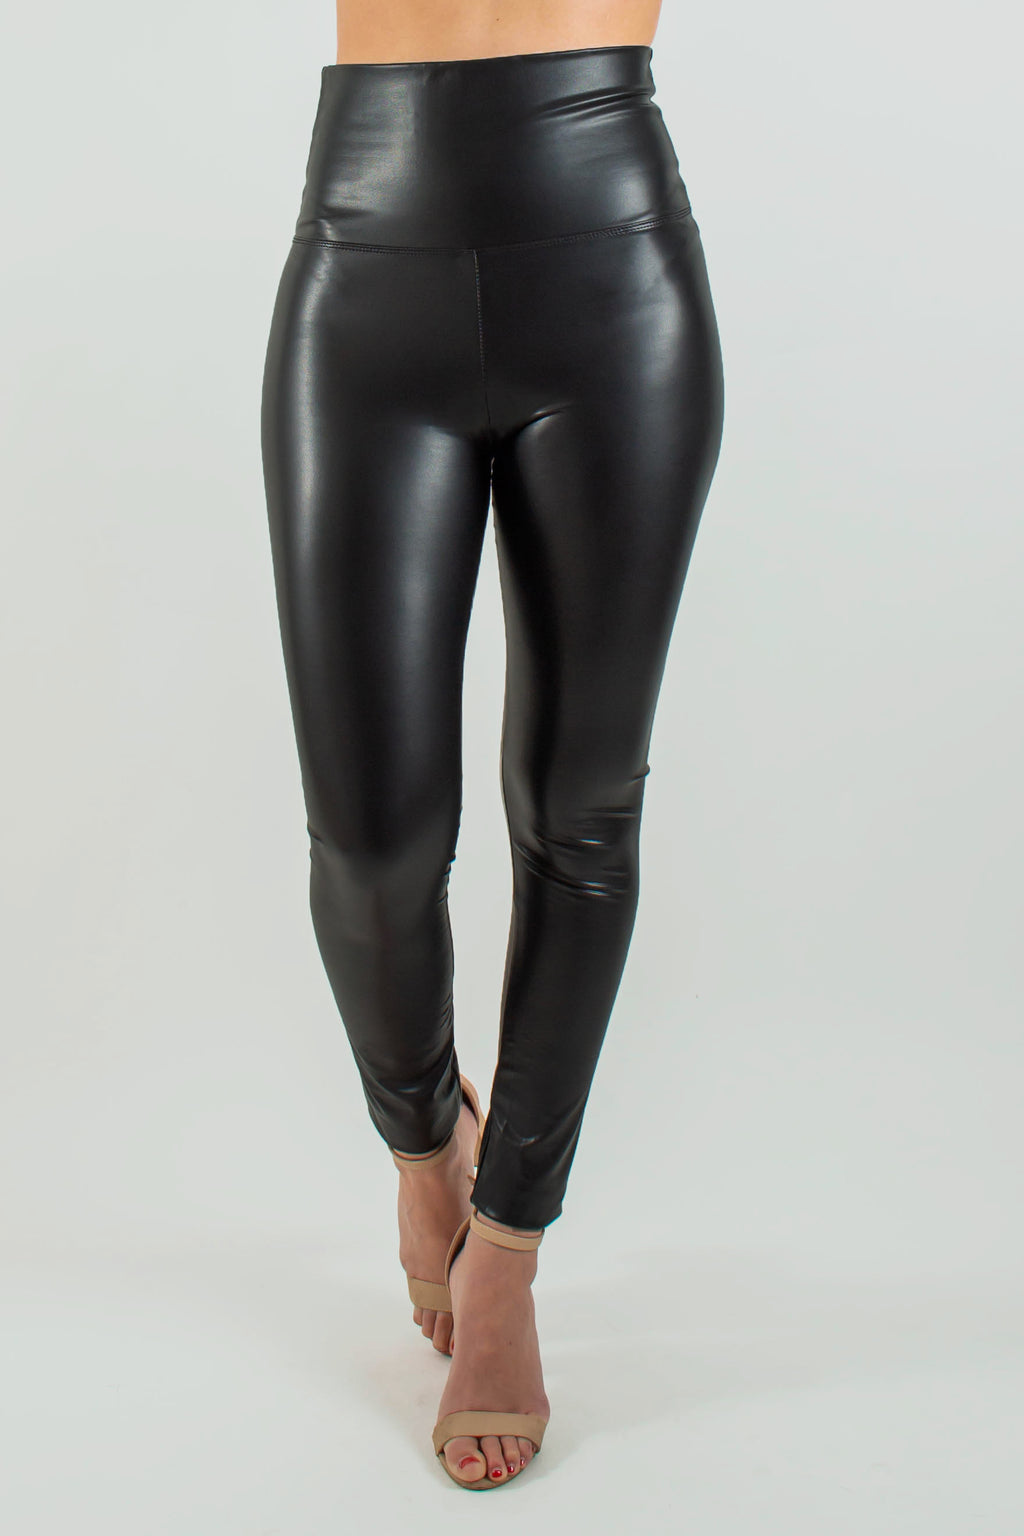 Cute black leather leggings, Cute black leggings, Trendy leggings, Trendy leather leggings, Trendy black leggings